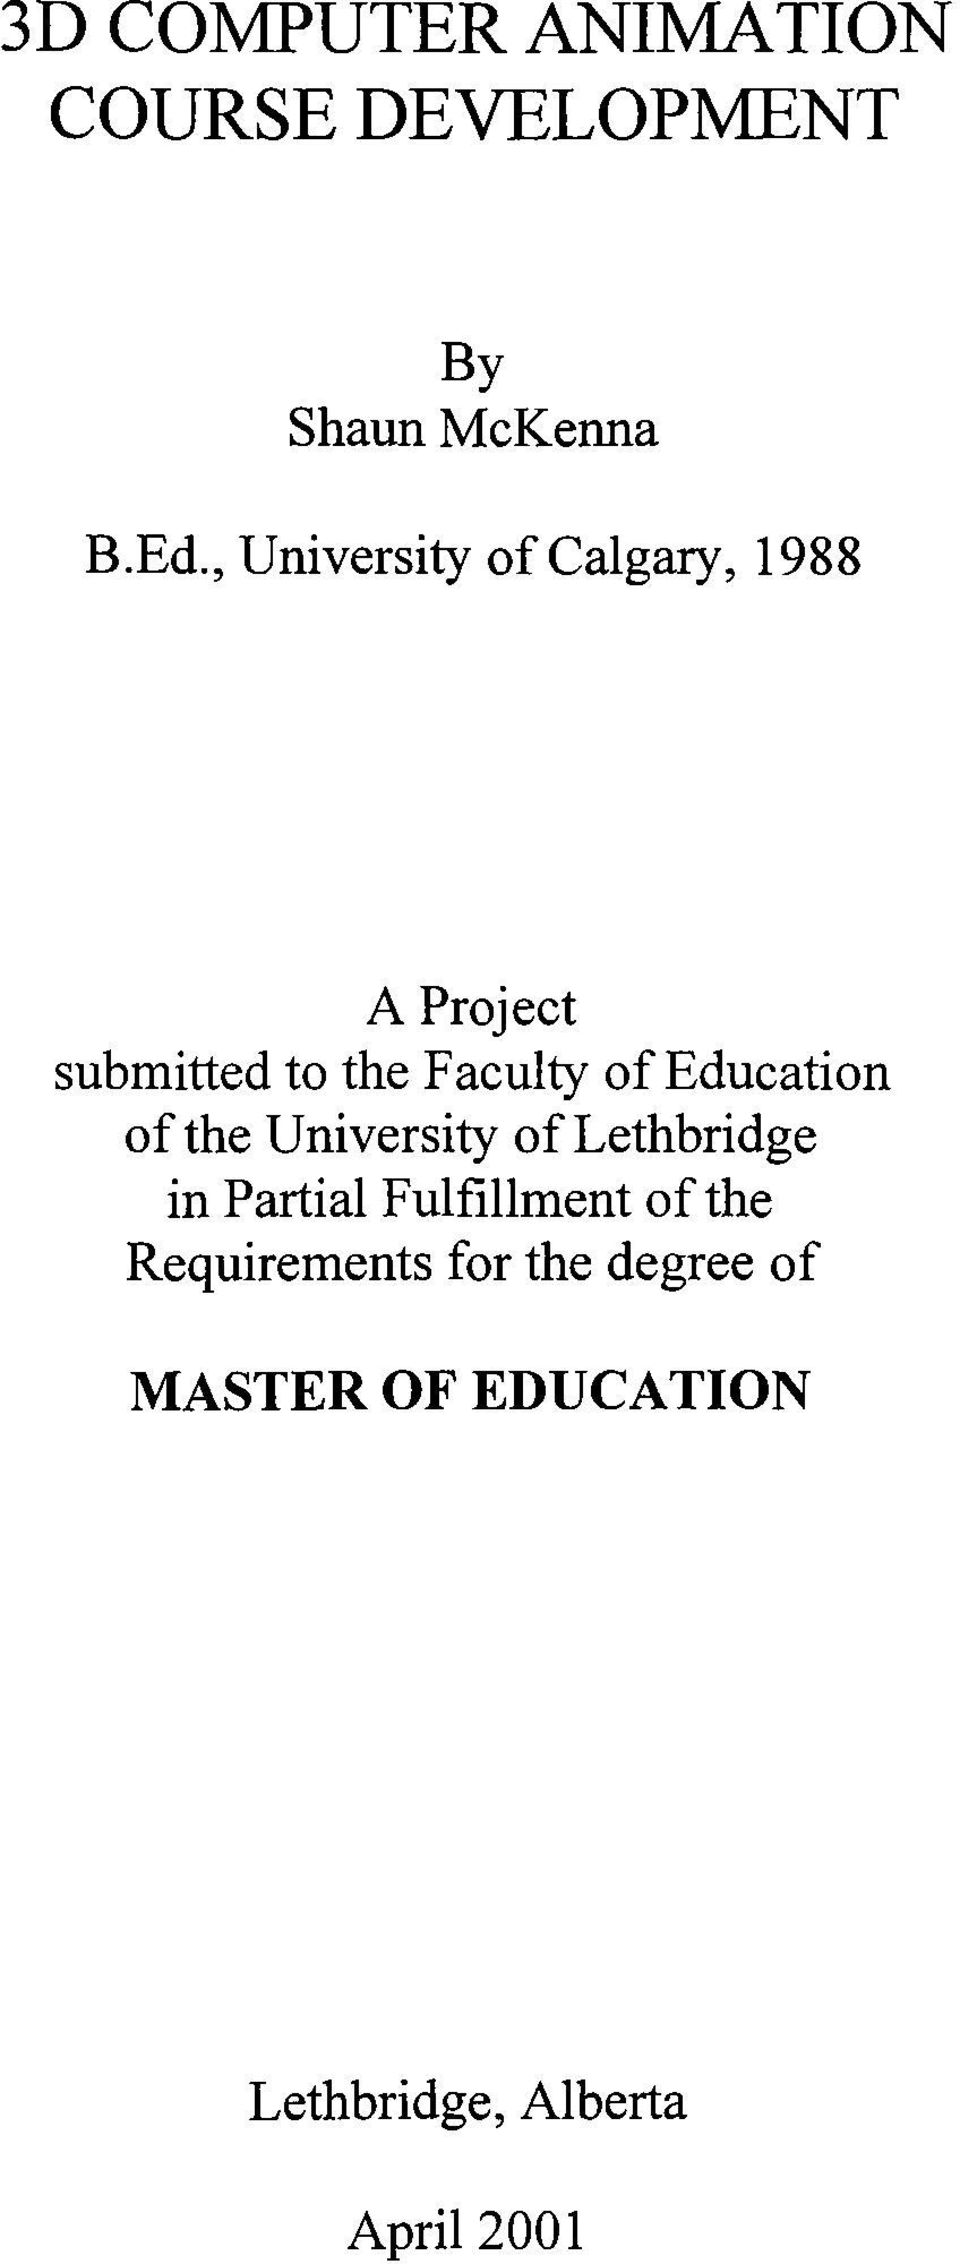 Education of the University of Lethbridge in Partial Fulfillment of